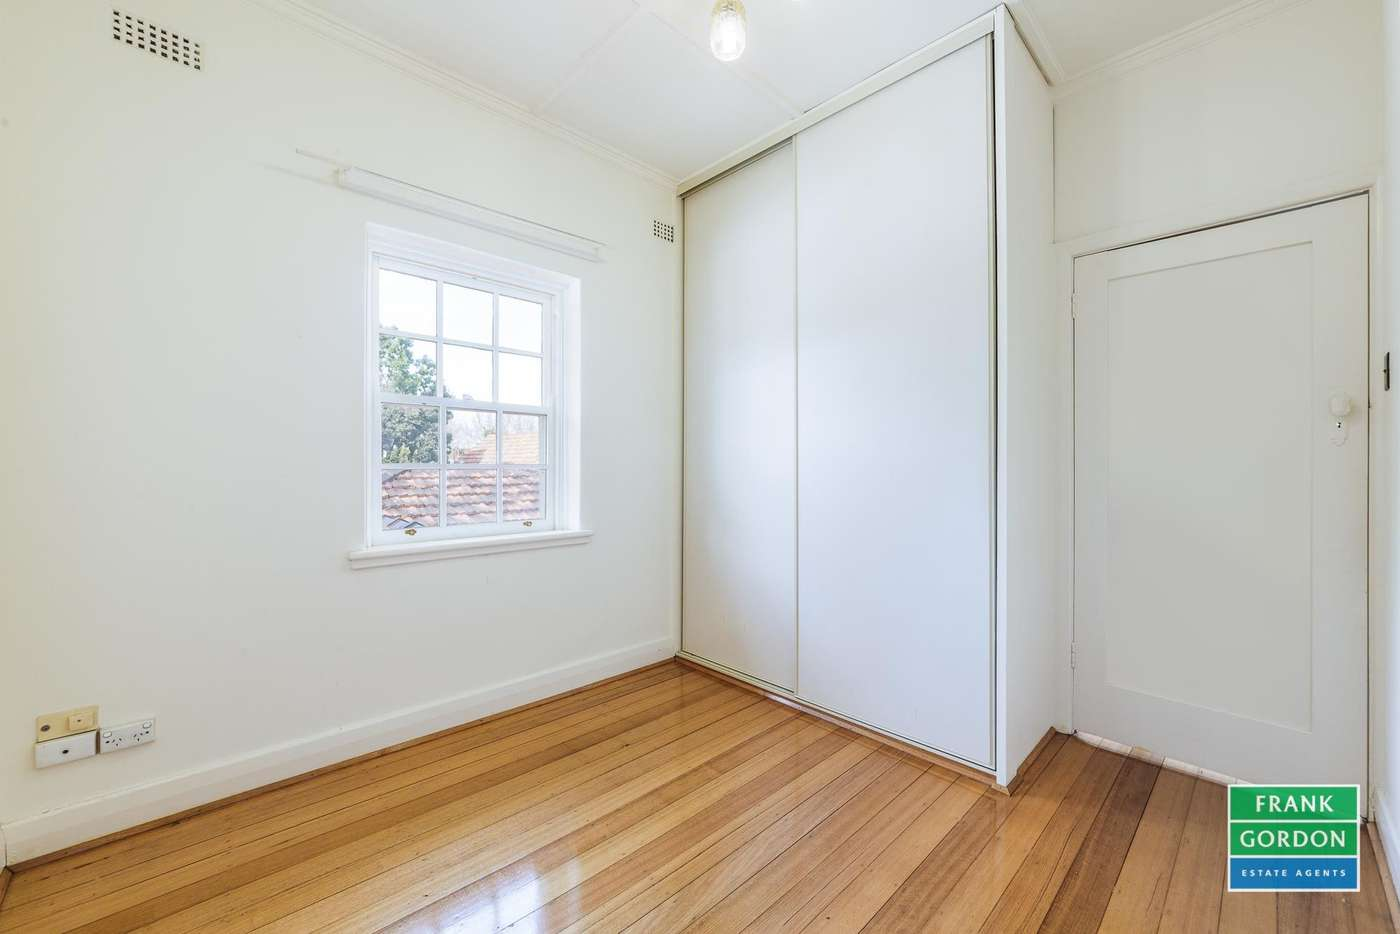 Sixth view of Homely townhouse listing, 18 Griffin Crescent, Port Melbourne VIC 3207